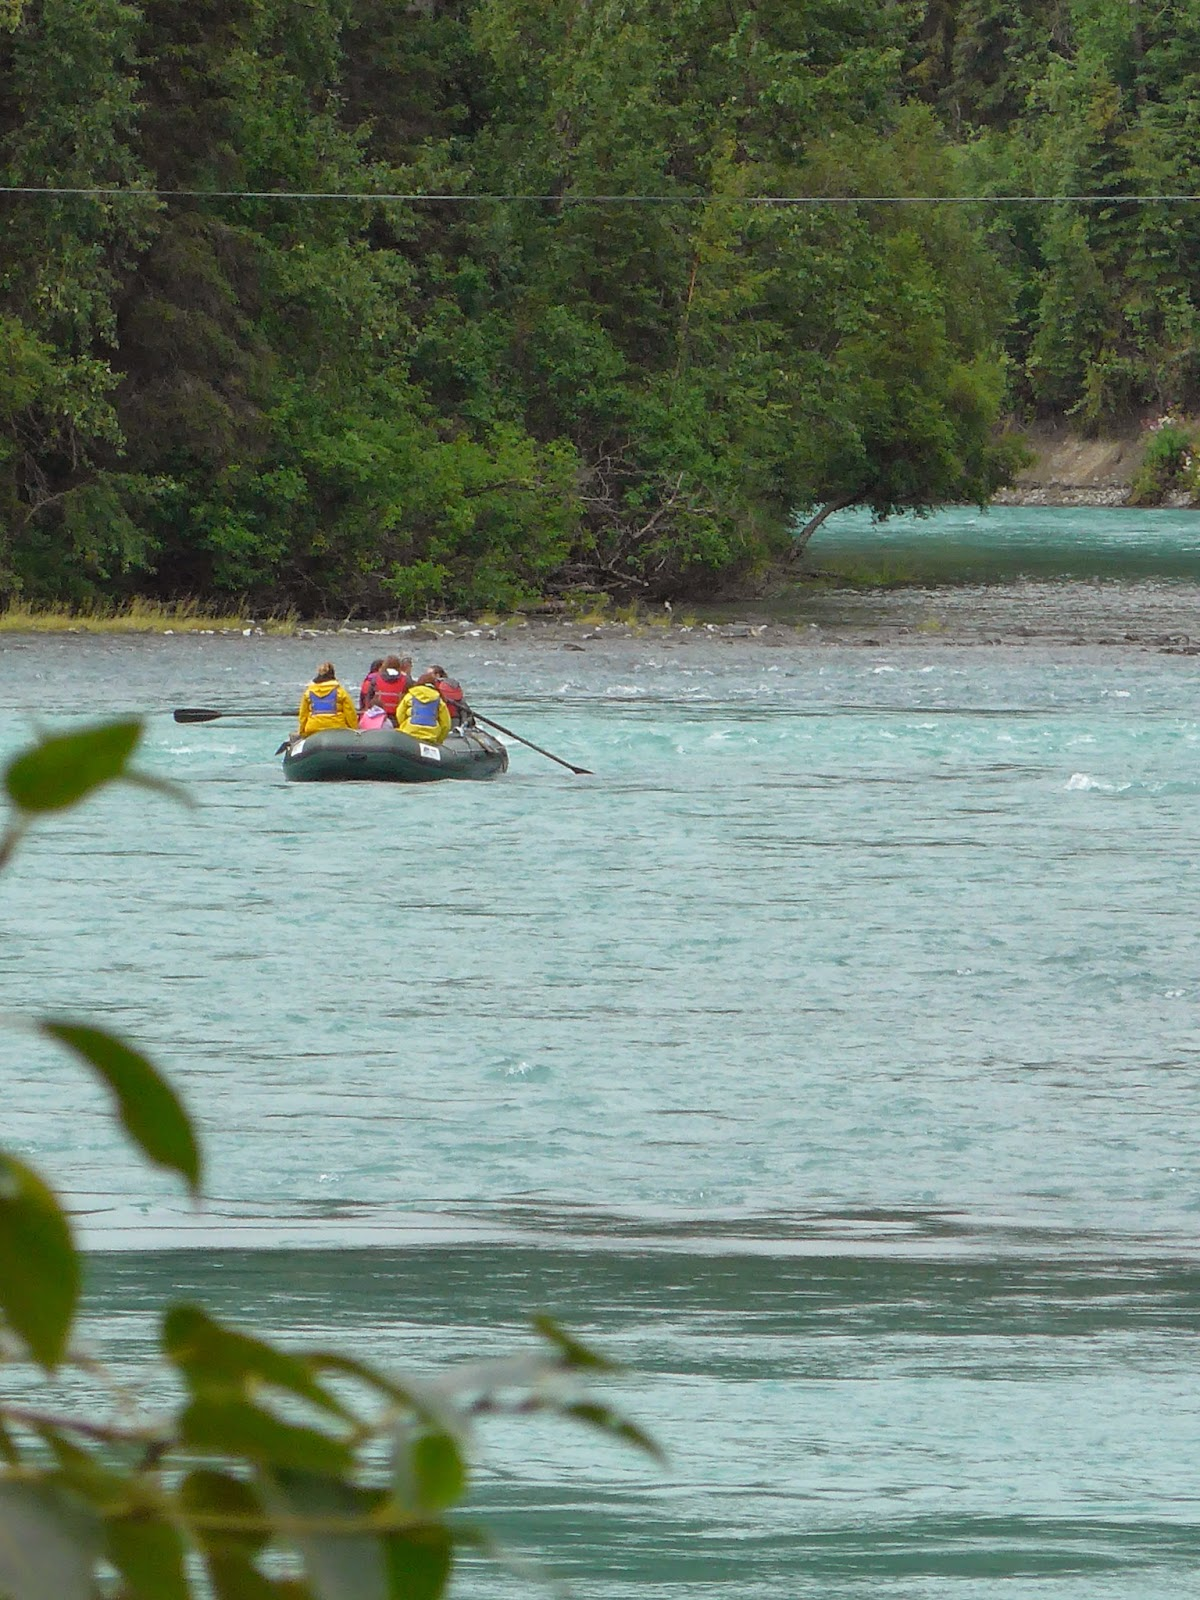 River rafting on the Upper Kenai River